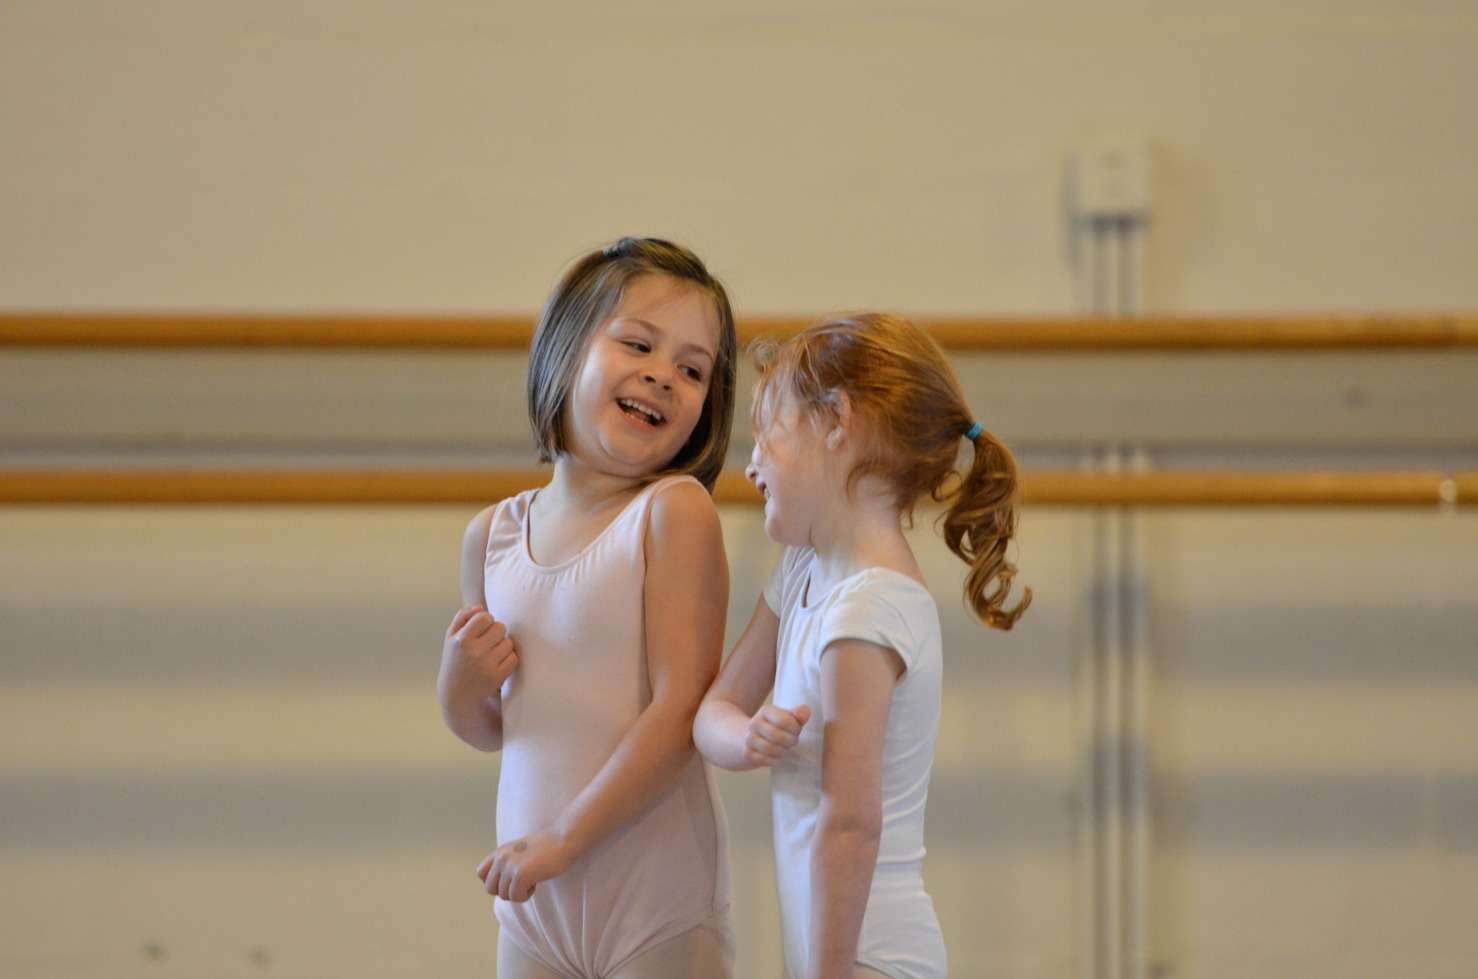 Lifelong friendships are formed in dance class.